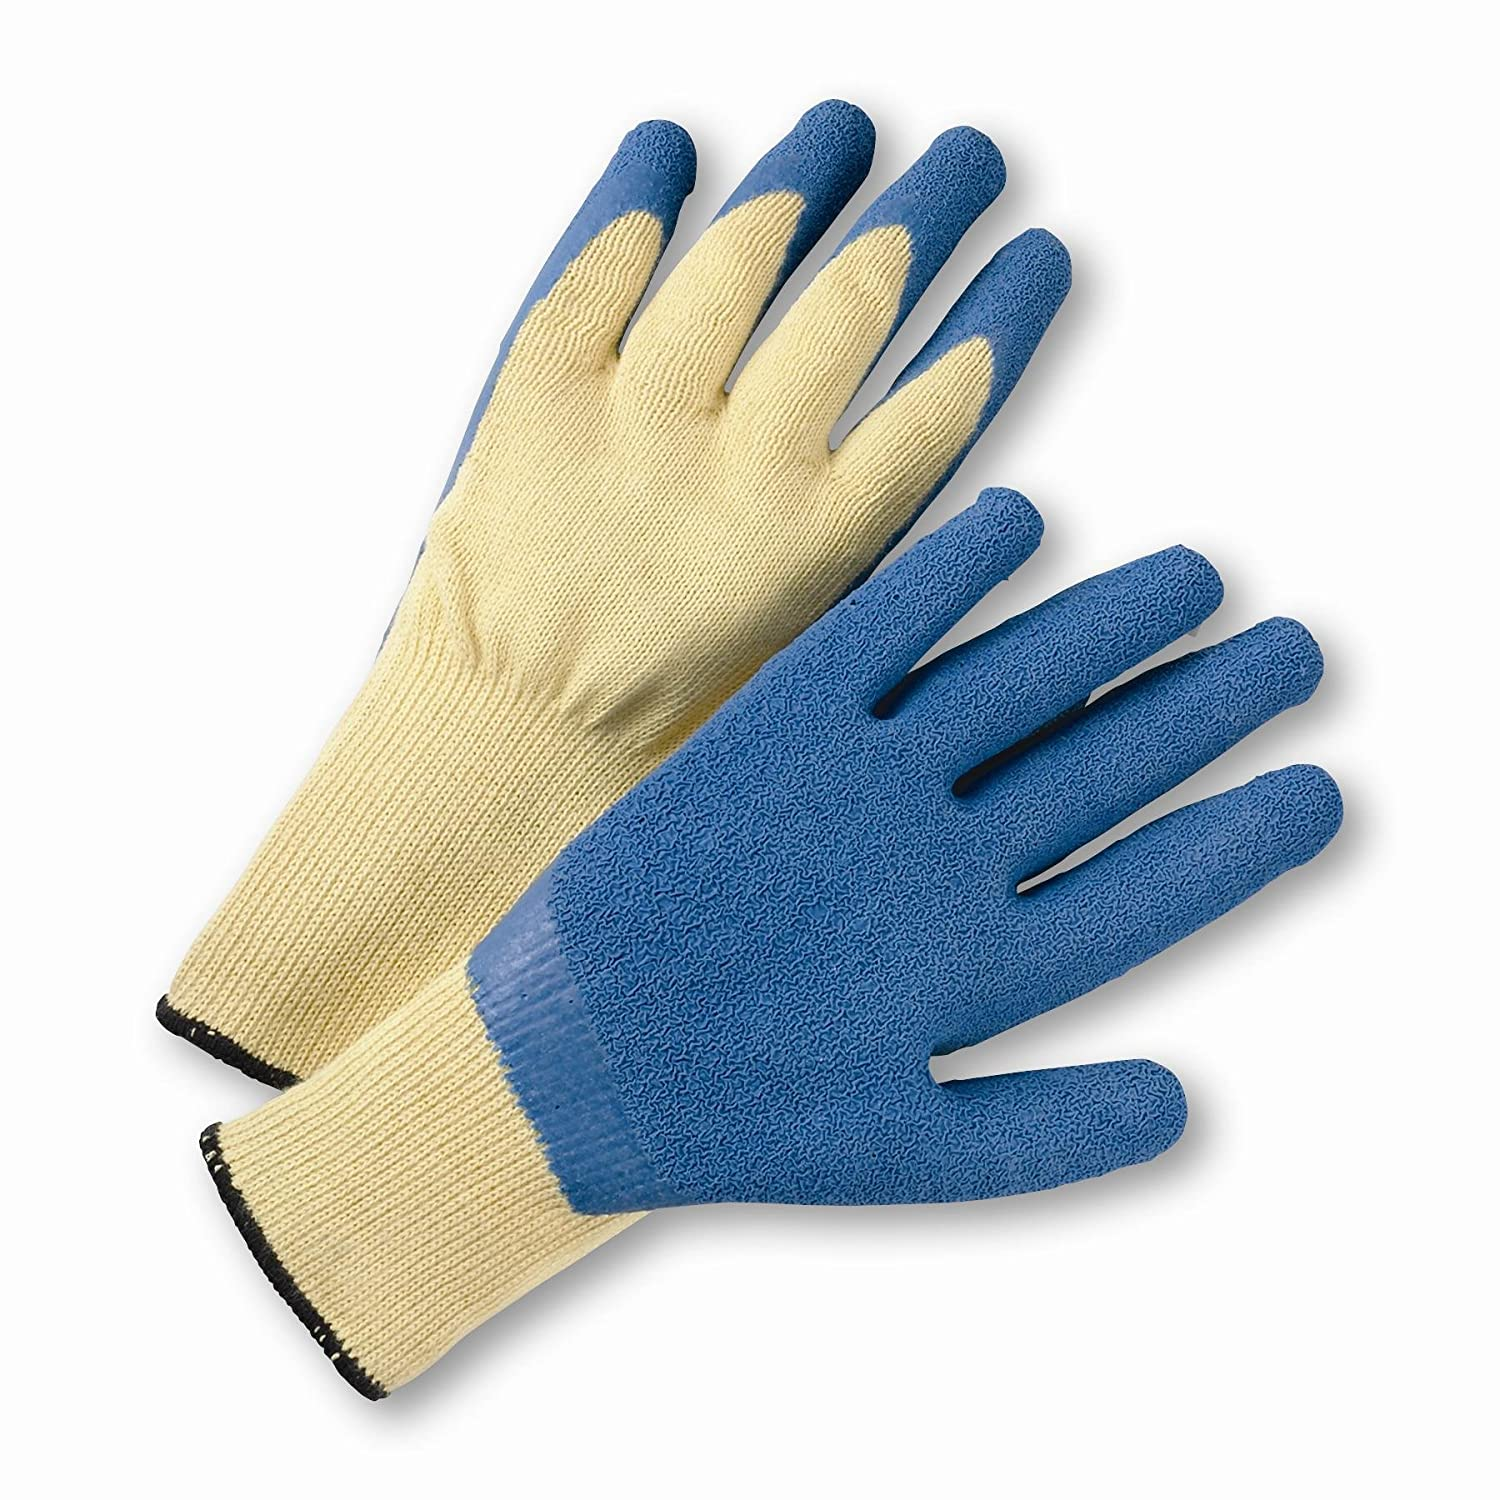 XL West Chester 700KSLC//XL Blue Crinkle Finish Latex Palm Coated Kevlar Gloves Blue Pack of 12